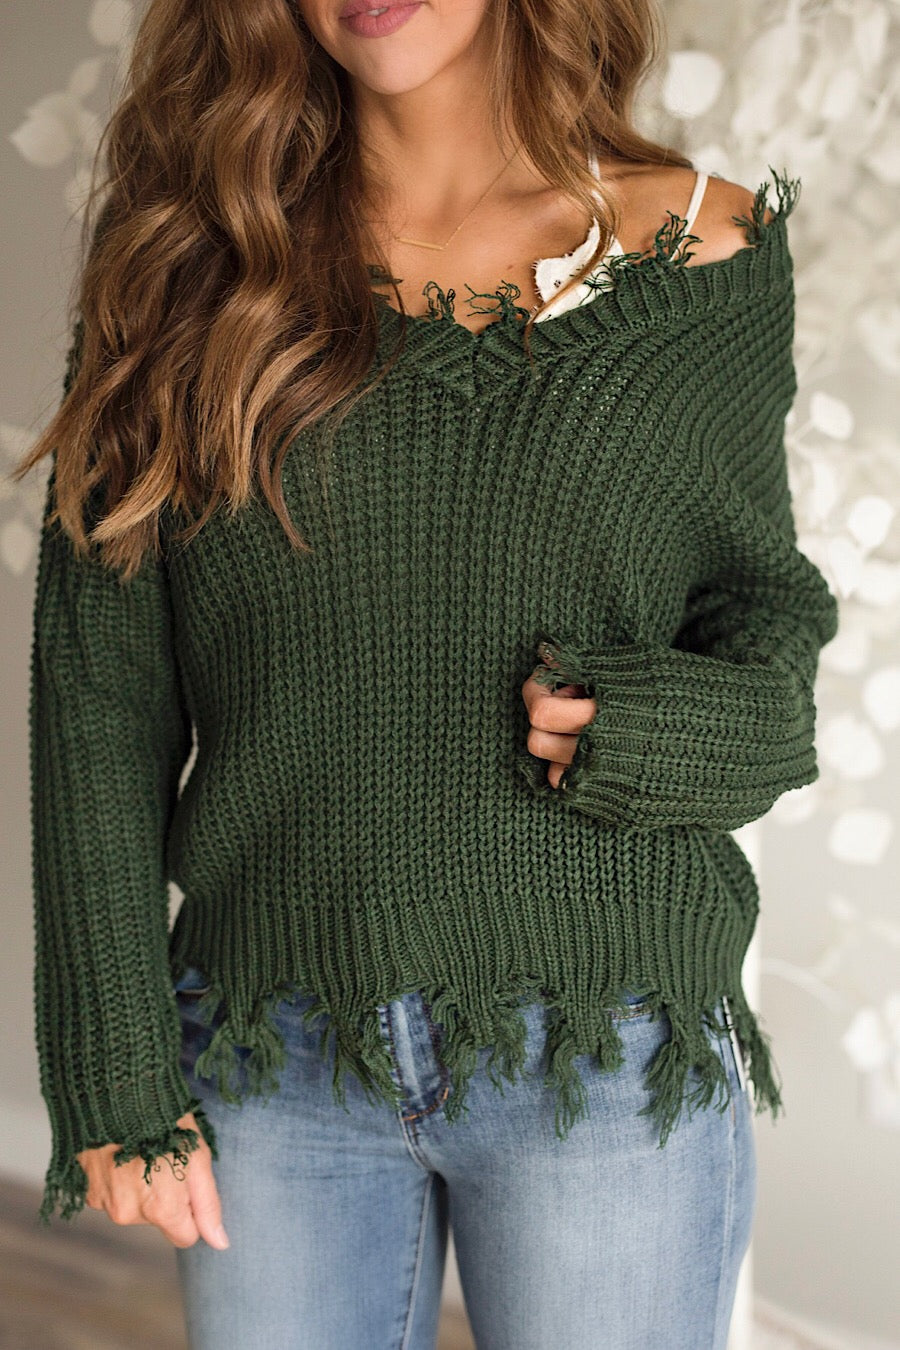 Distressed Sweater in Olive